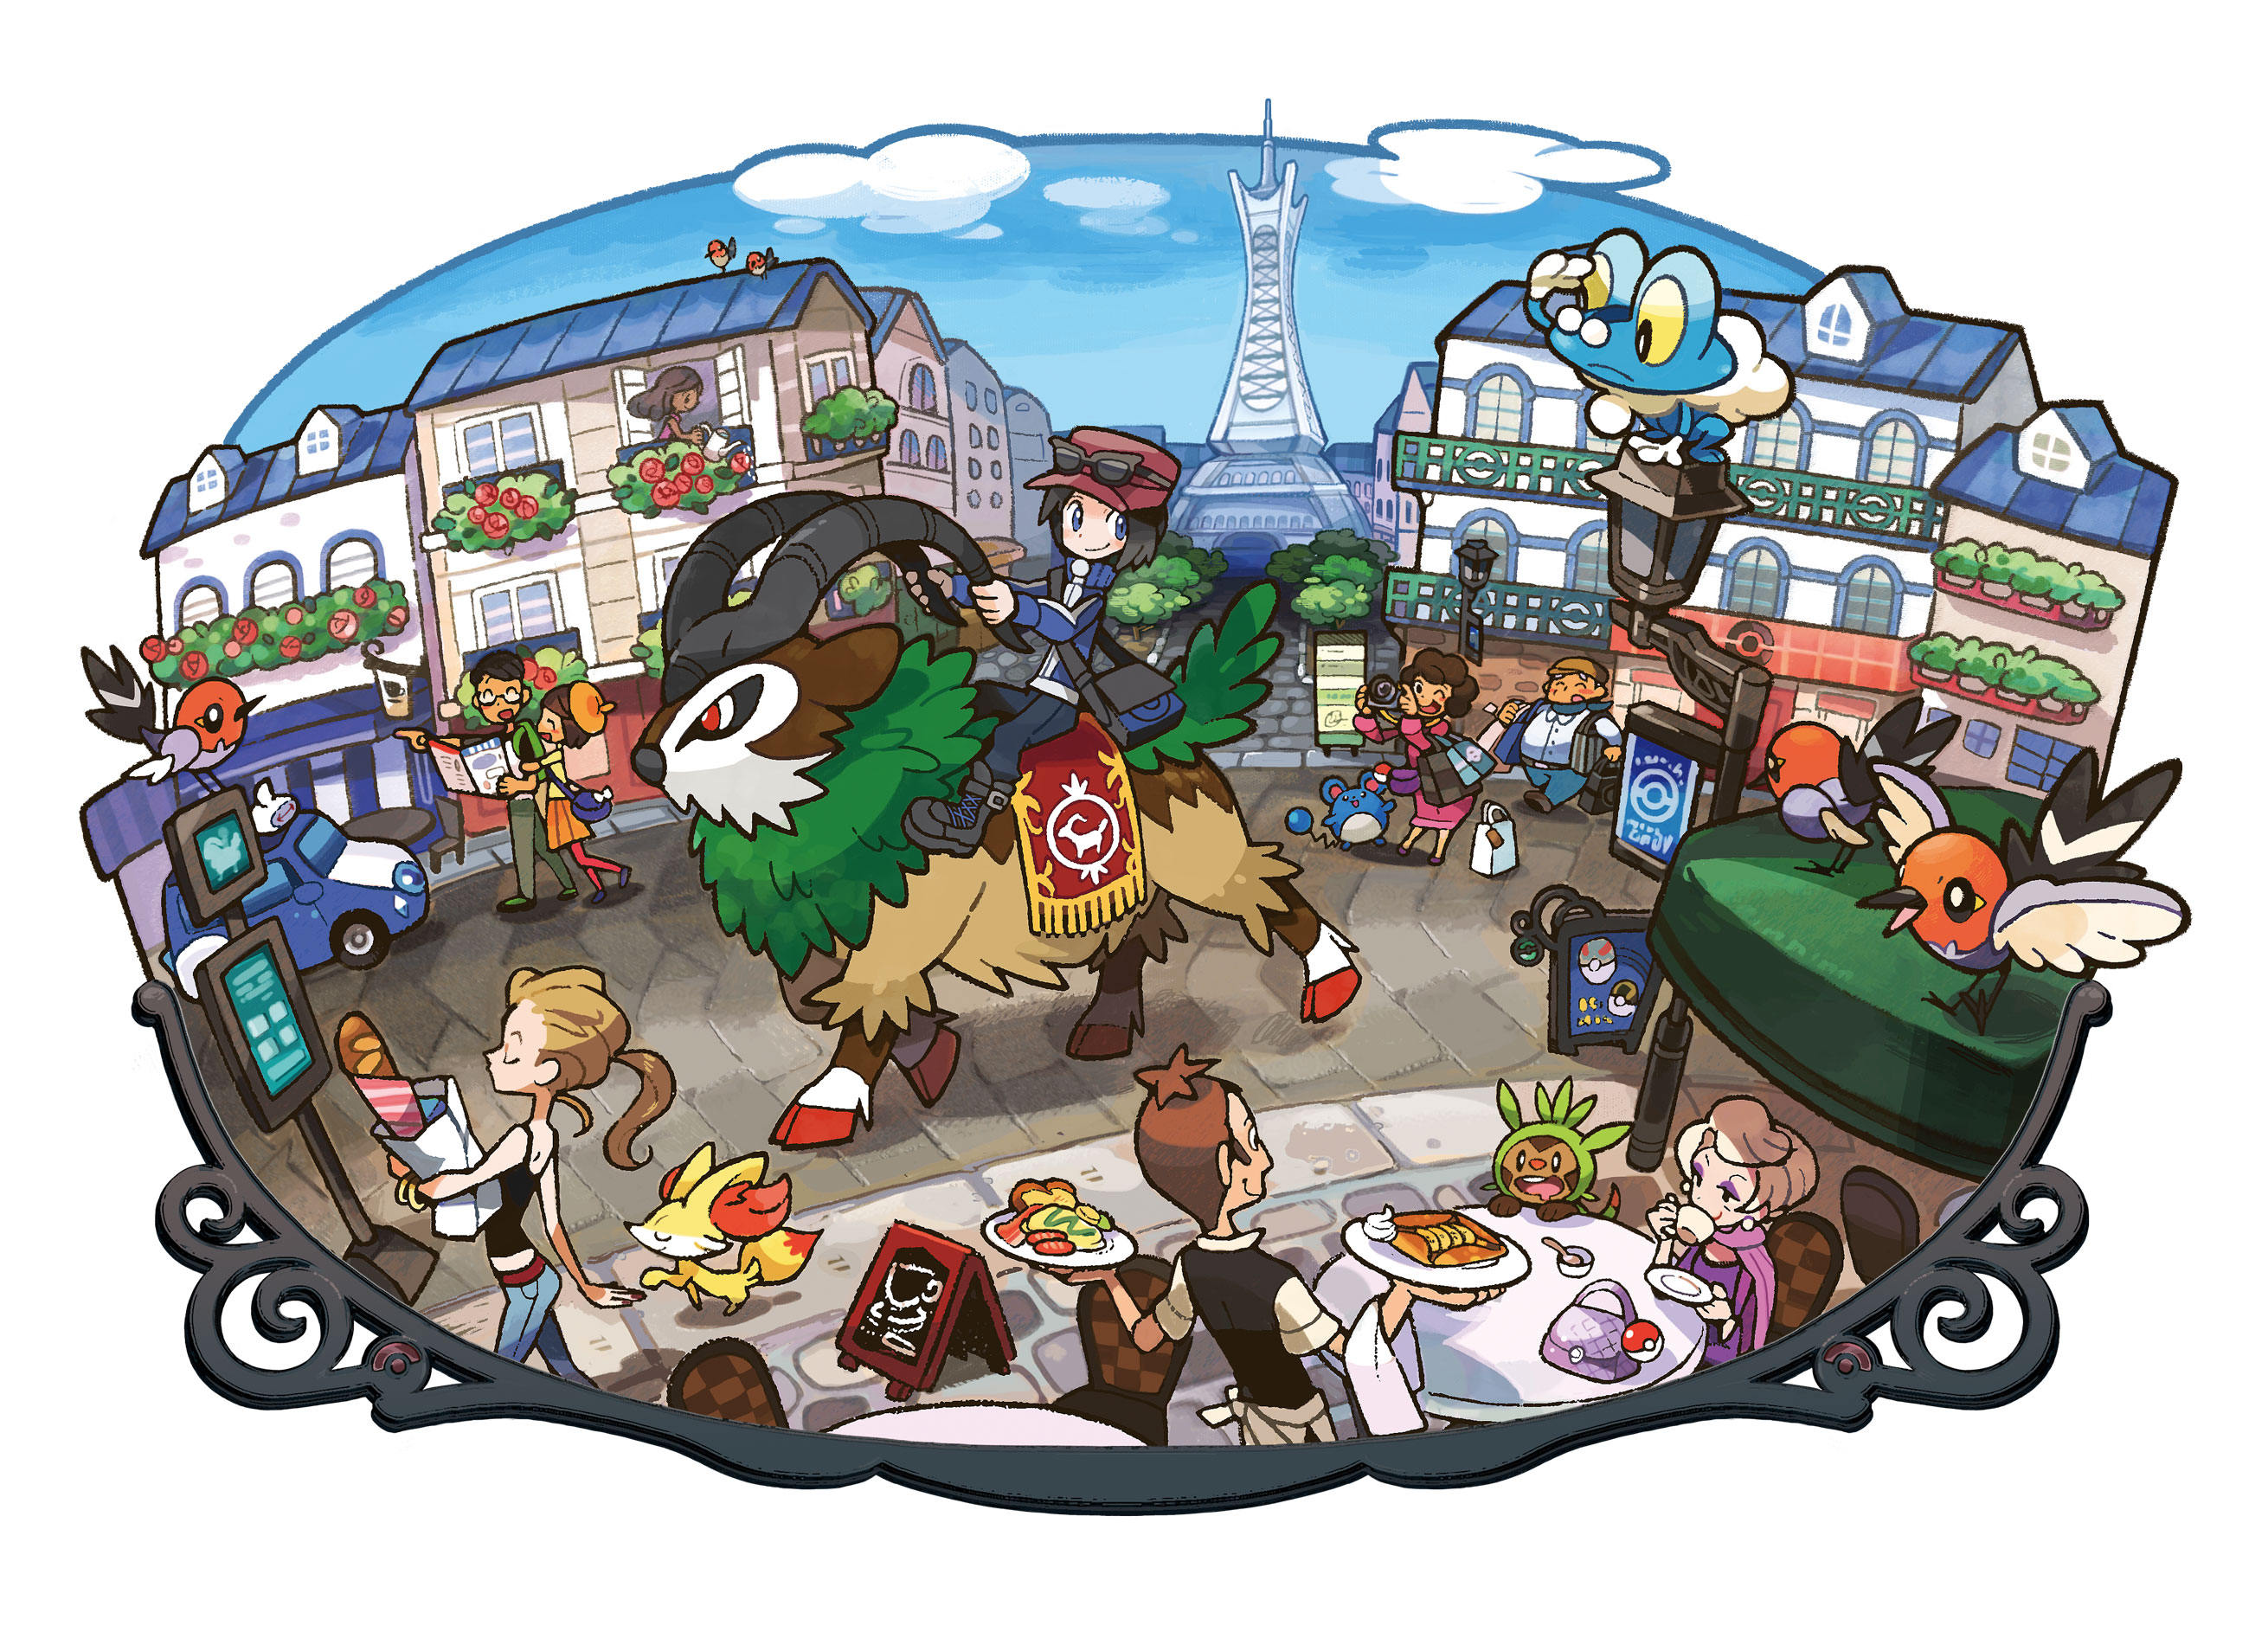 Lumiose City